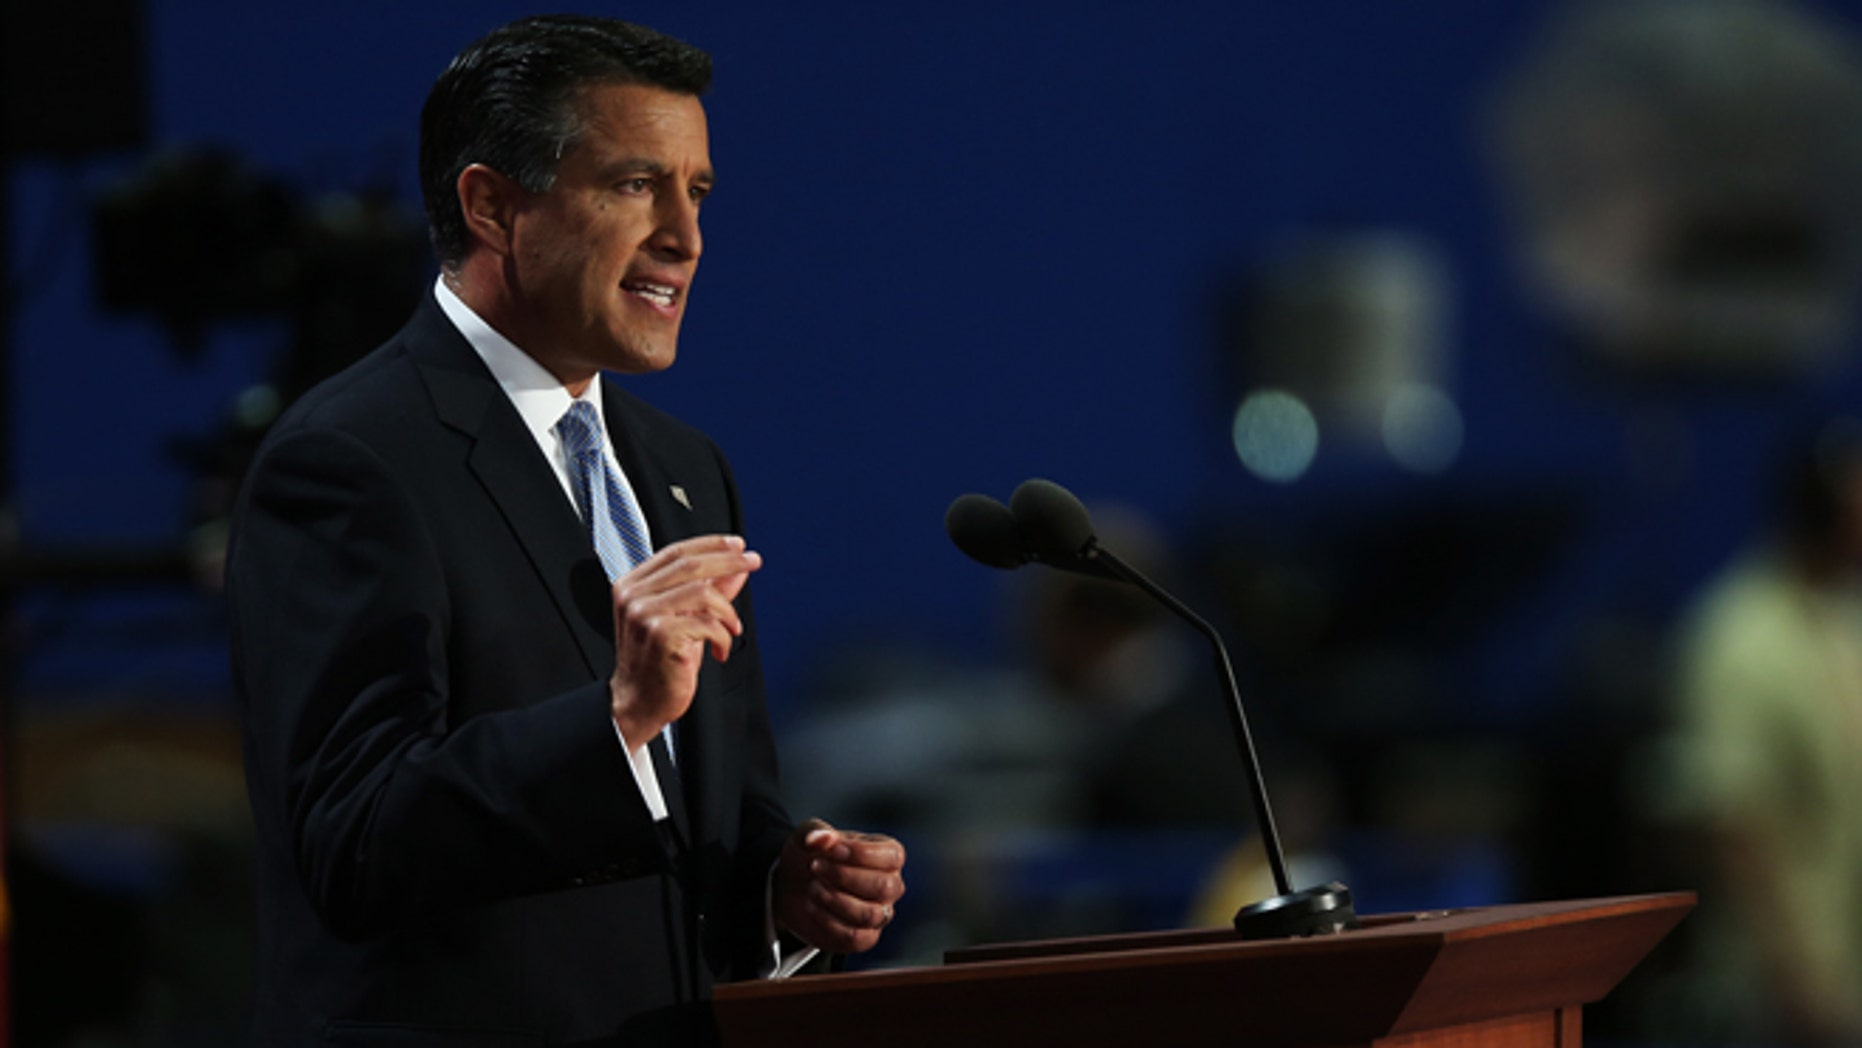 Nevada Gov. Brian Sandoval speaks during the Republican National Convention at the Tampa Bay Times Forum on August 28, 2012 in Tampa, Florida. (Photo by Win McNamee/Getty Images)